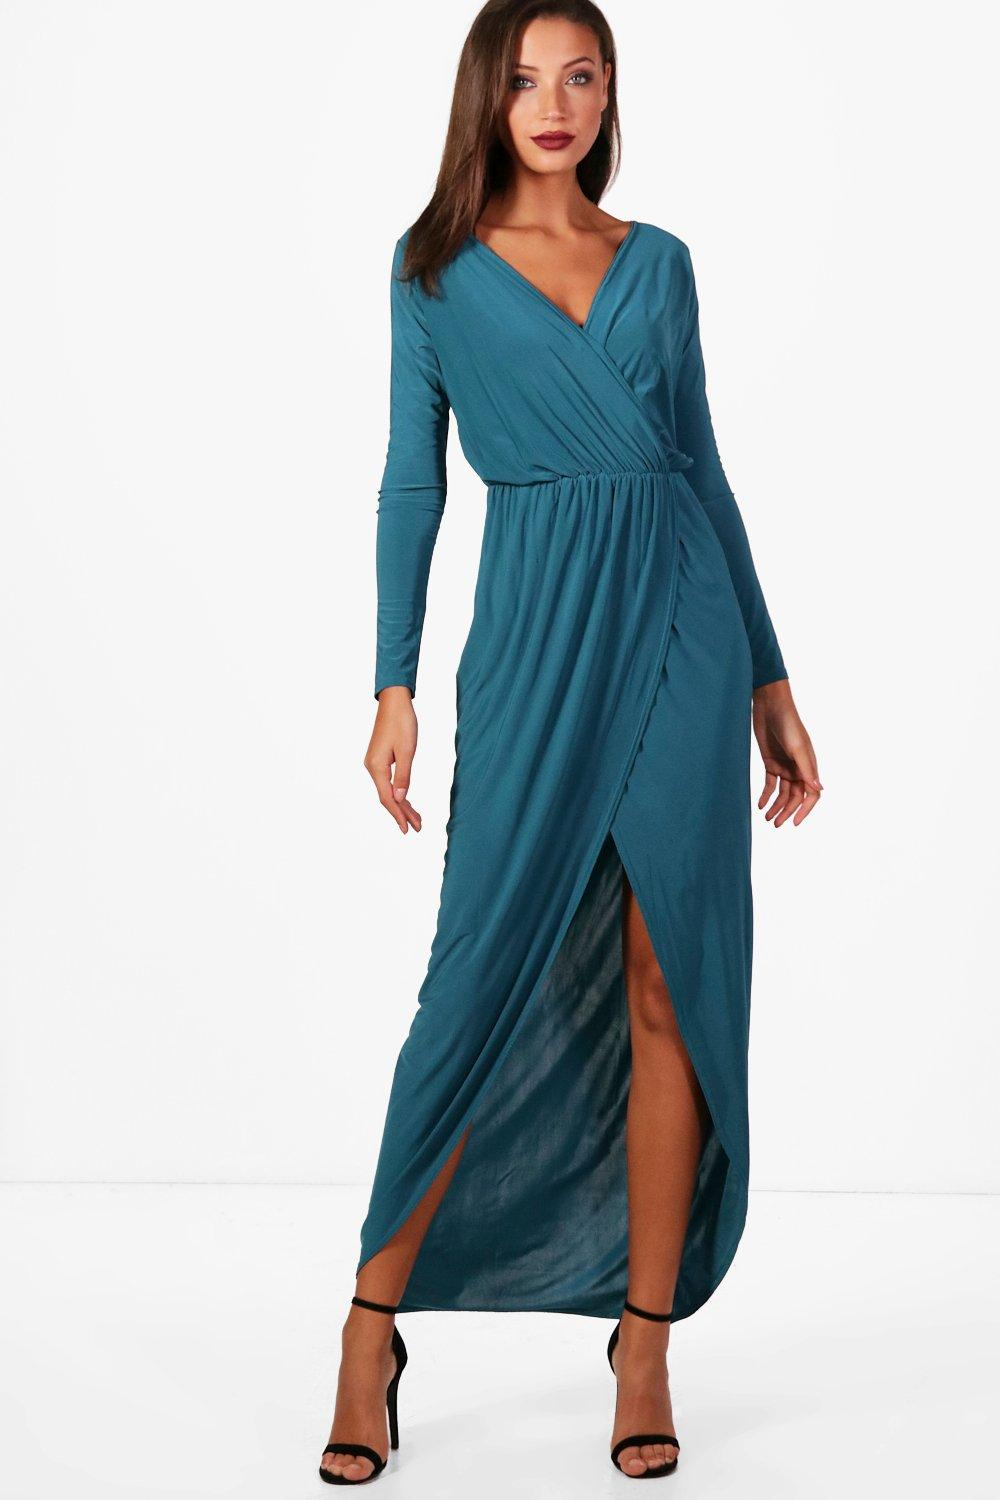 Abra Slinky Wrap Maxi Dress teal